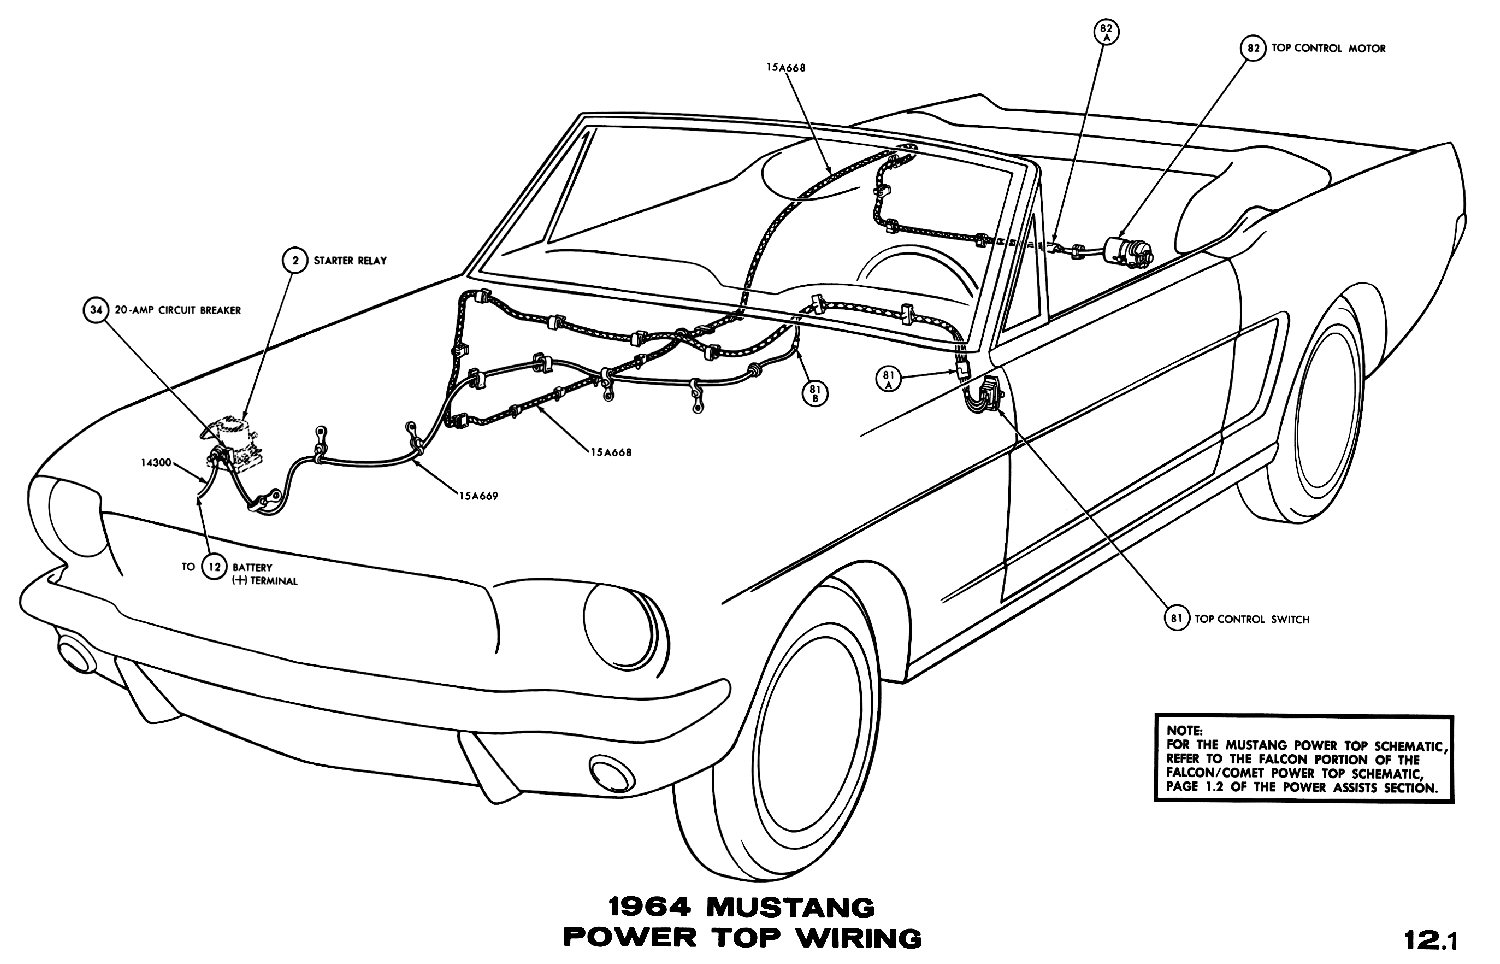 1964 Mustang Fuse Box Wiring Diagrams Electric Water Heater Schematic Library Location